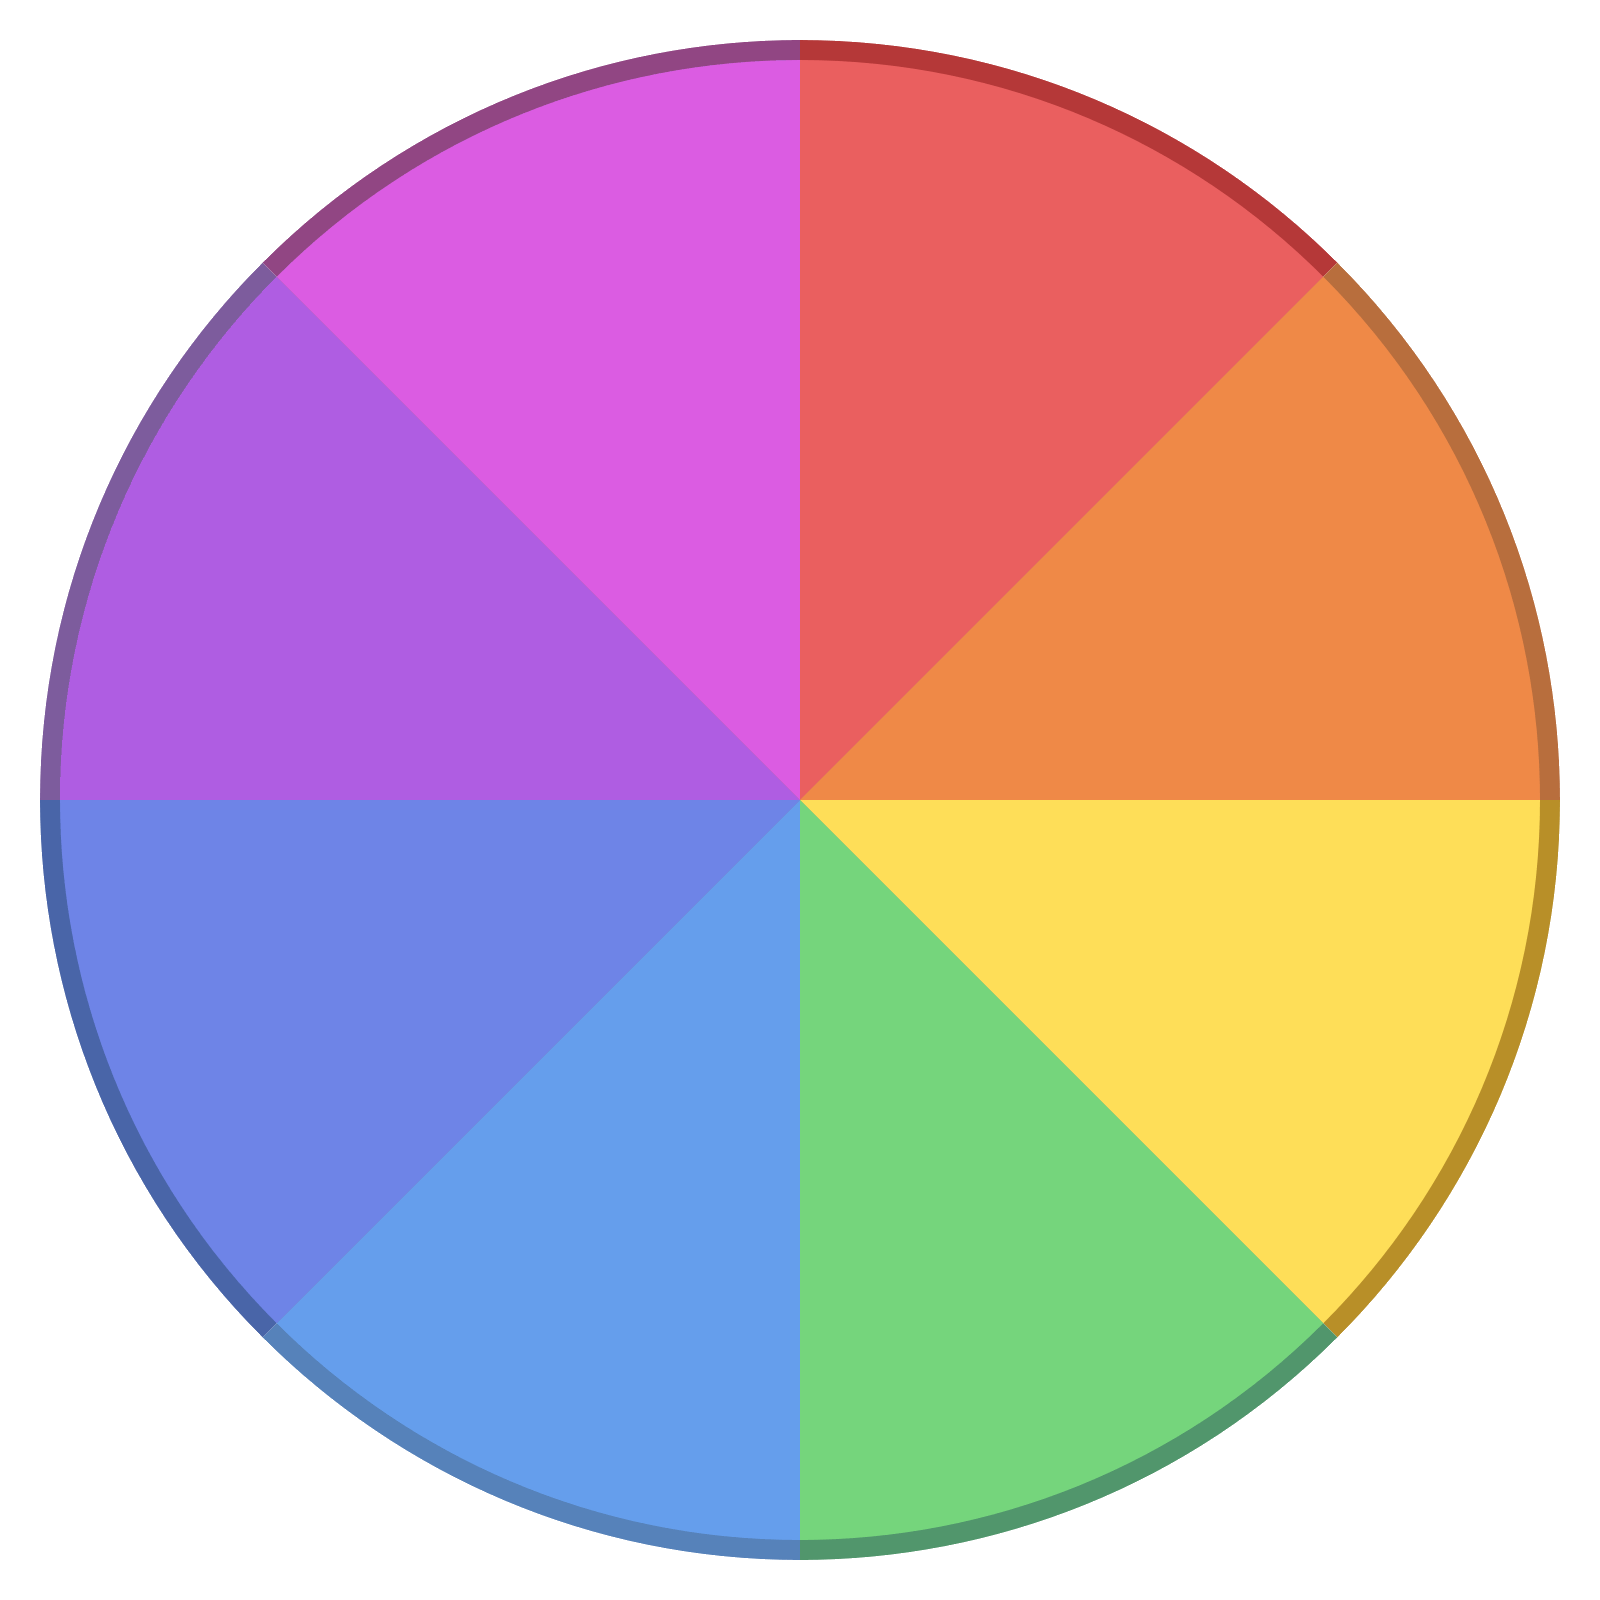 Color wheel png. Icon free download and